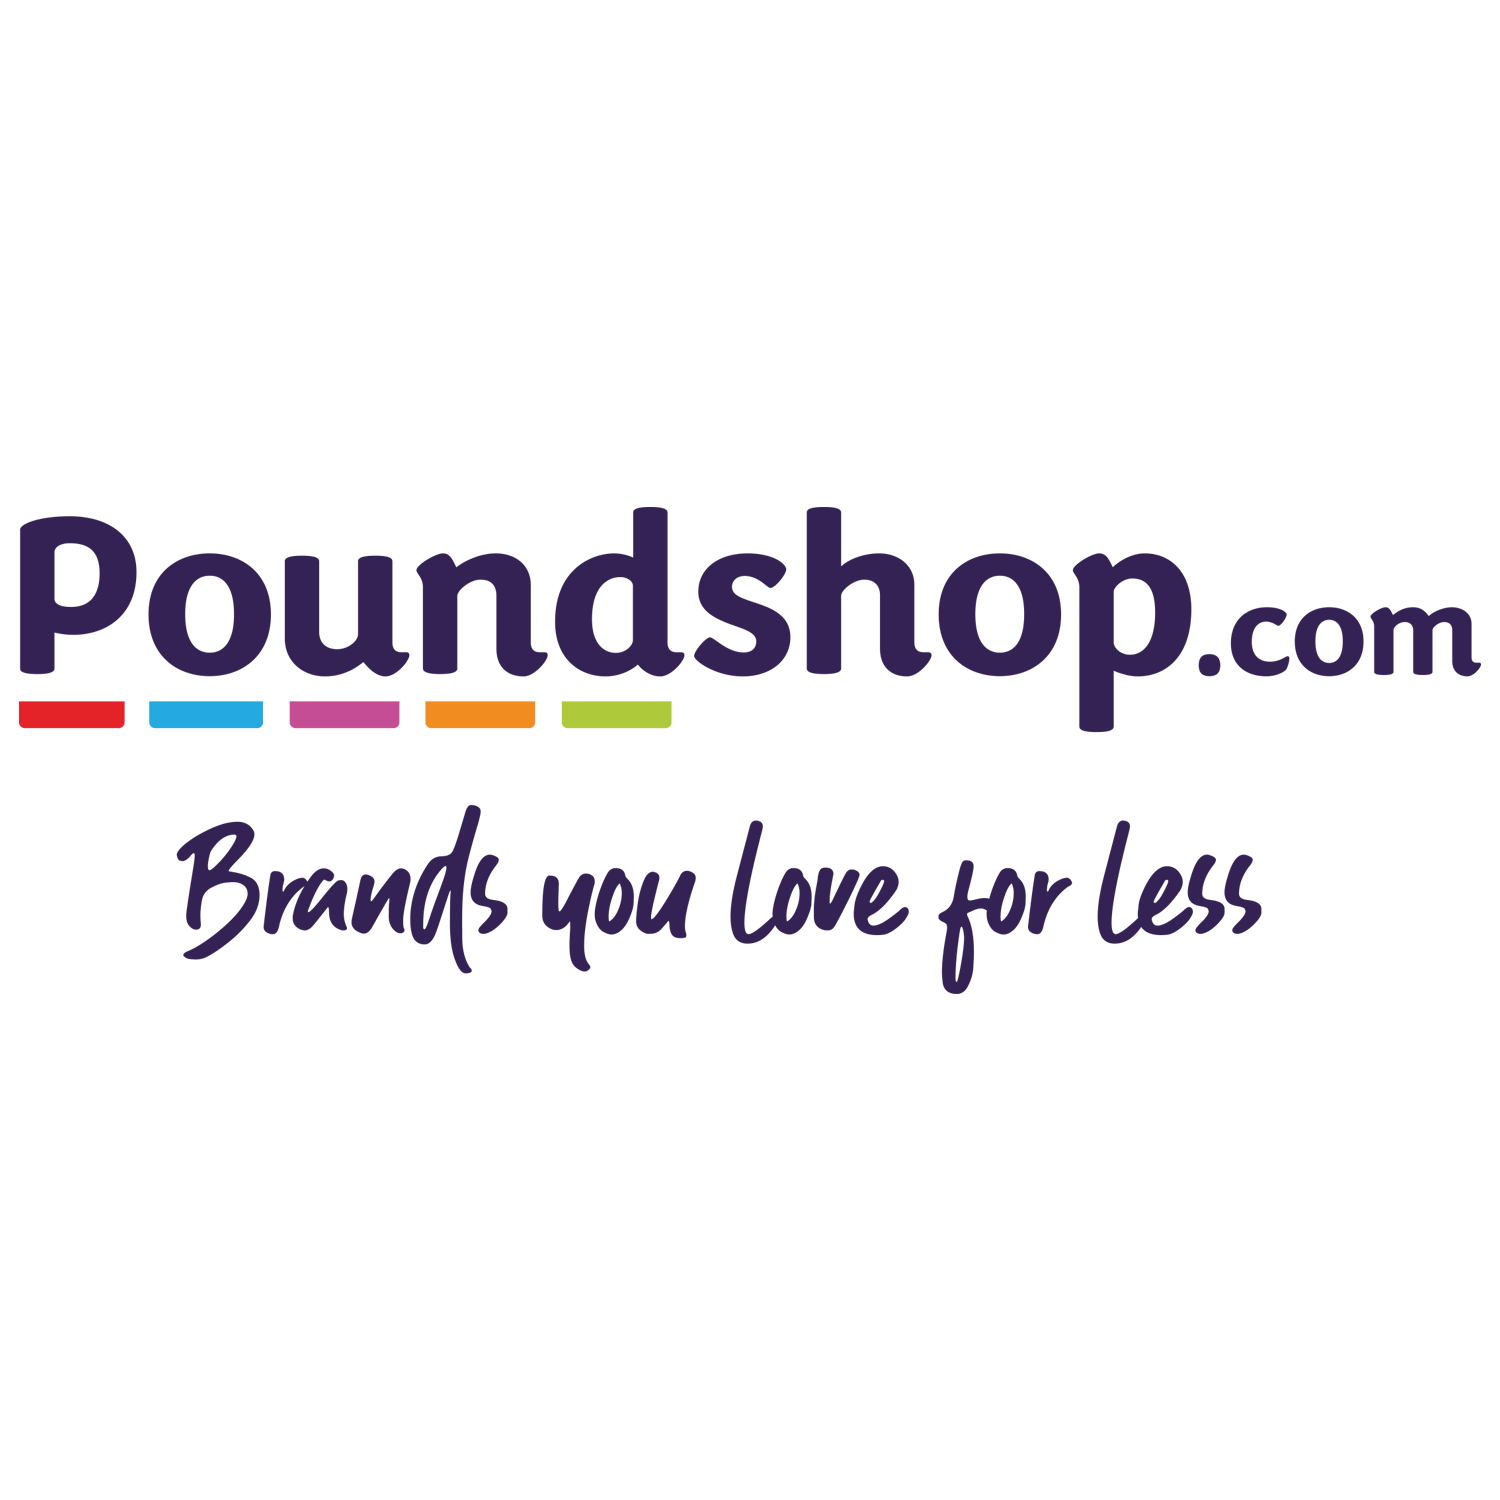 Poundshop Coupons & Promo Codes